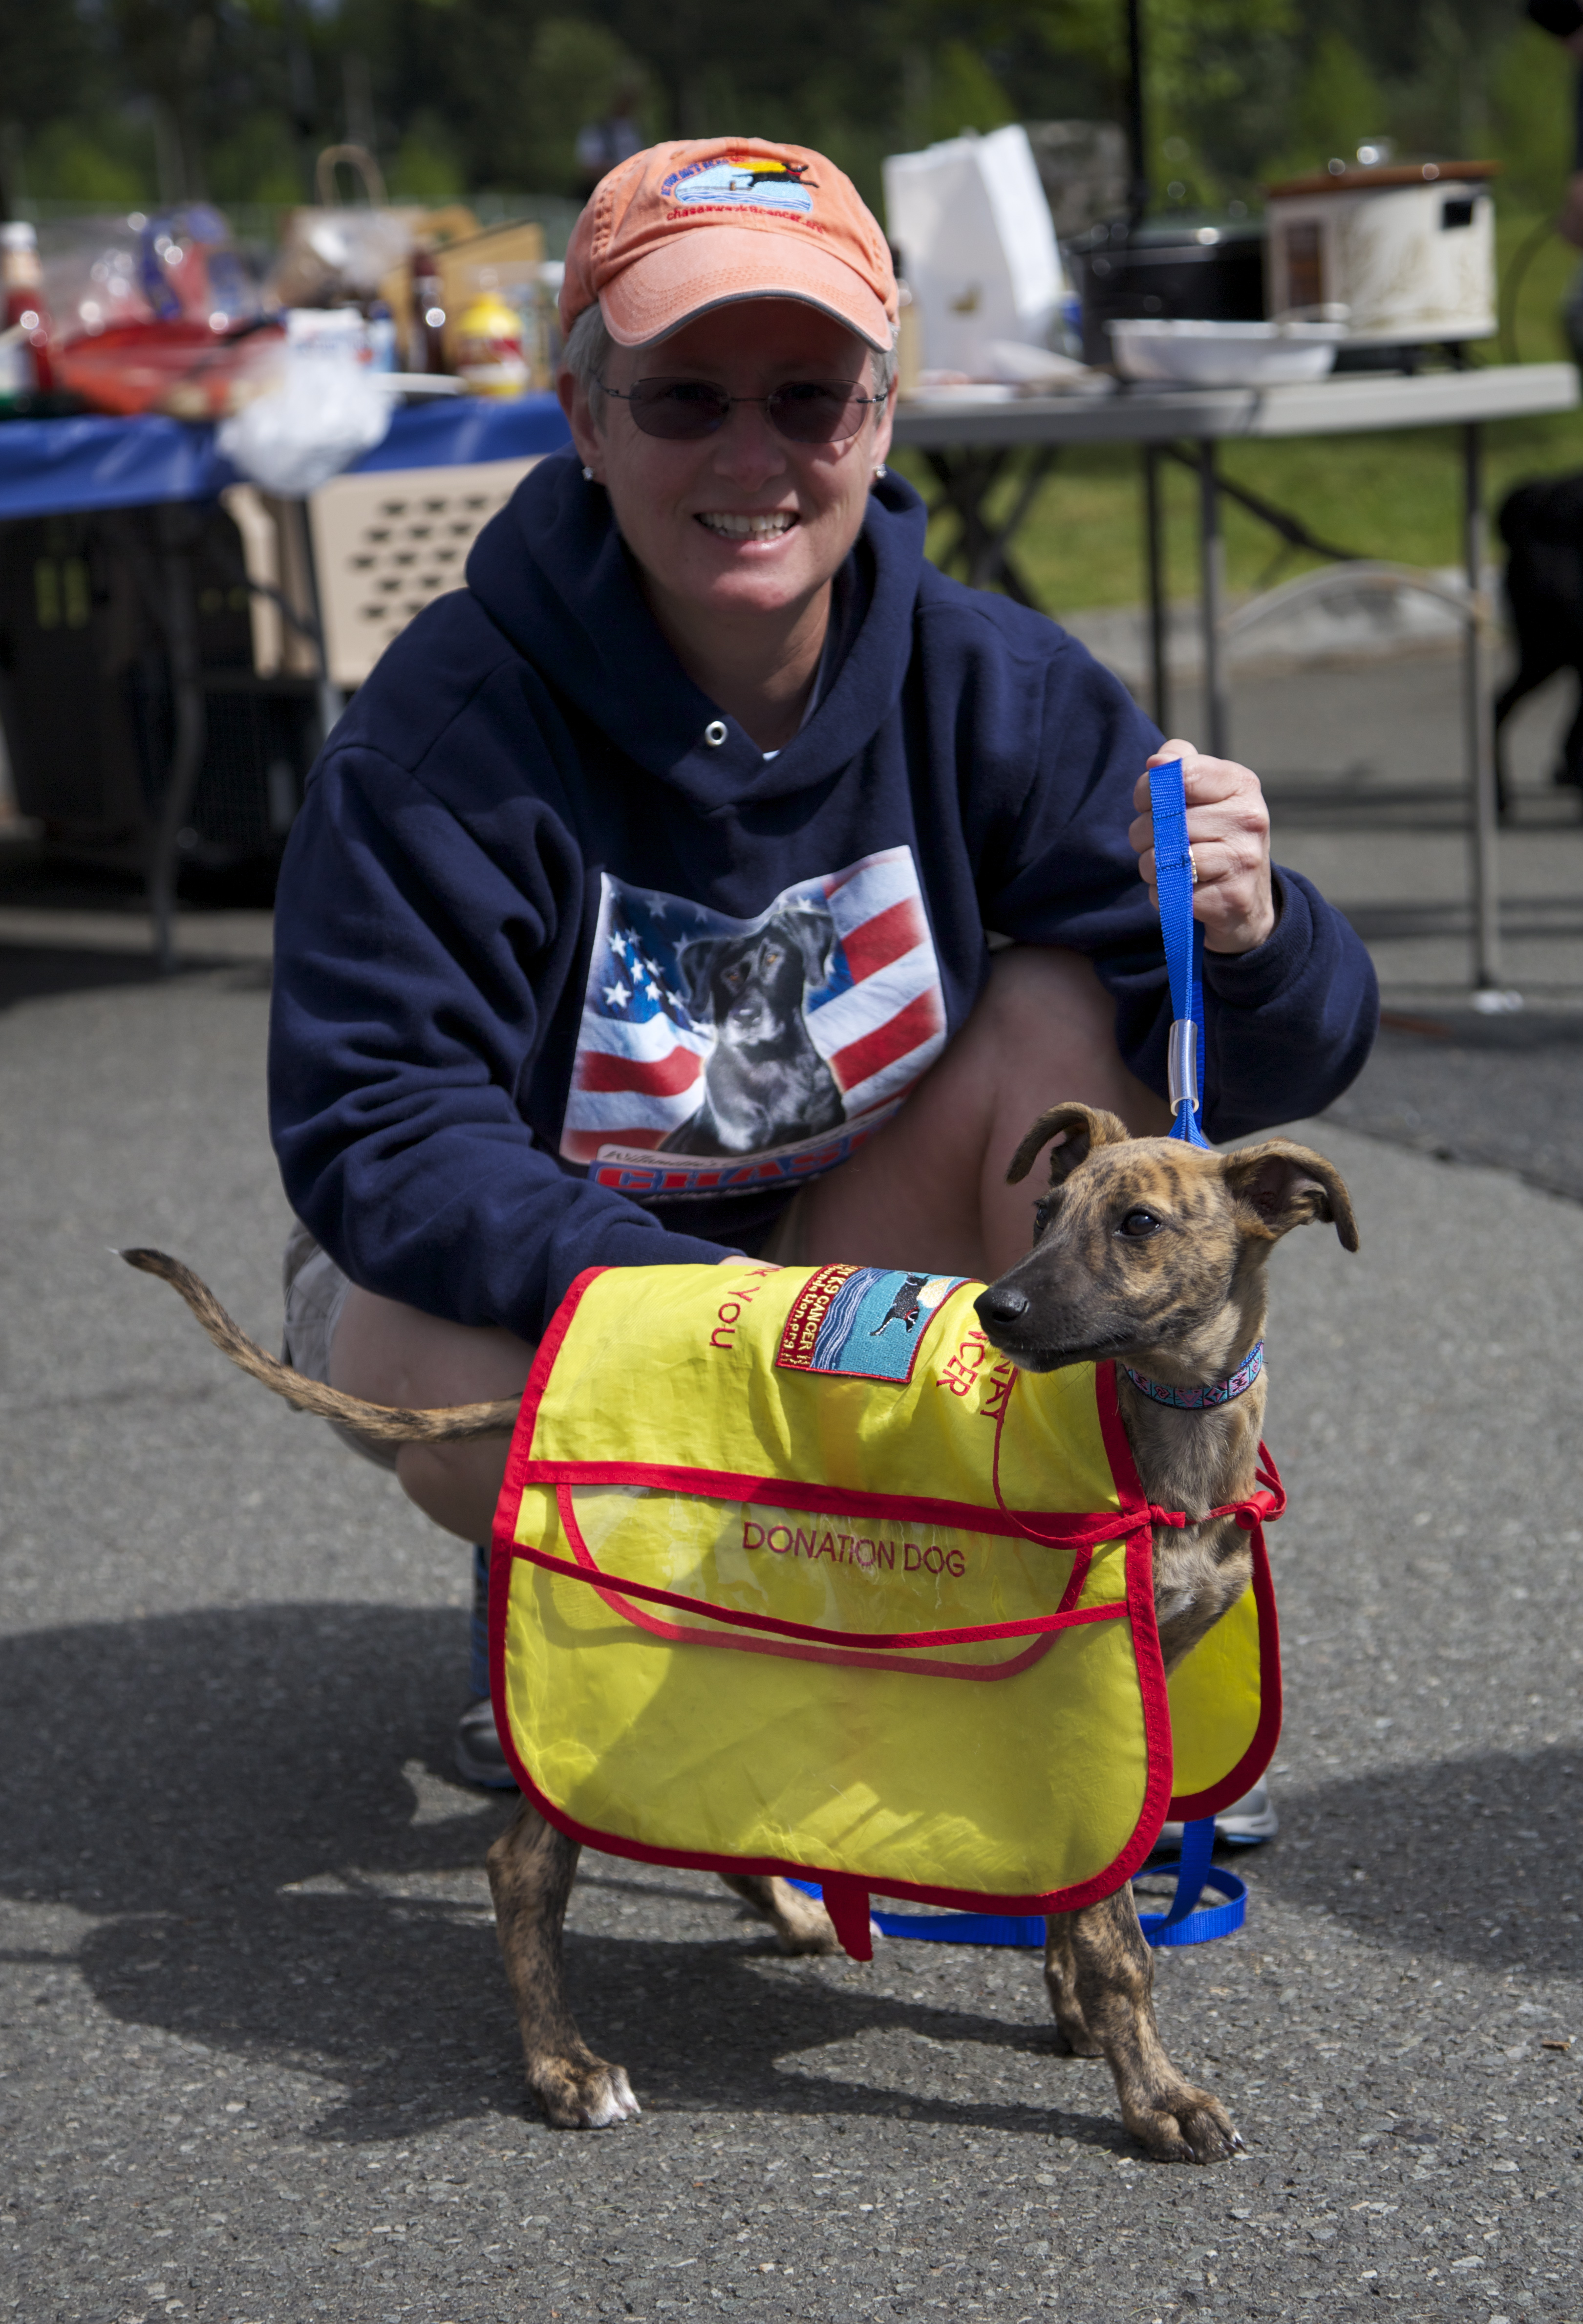 d7f487127ea6 find a donation dog working the crowds all year long at Dock diving events  across the country so please share a dollar or two with these hard working  pups ...